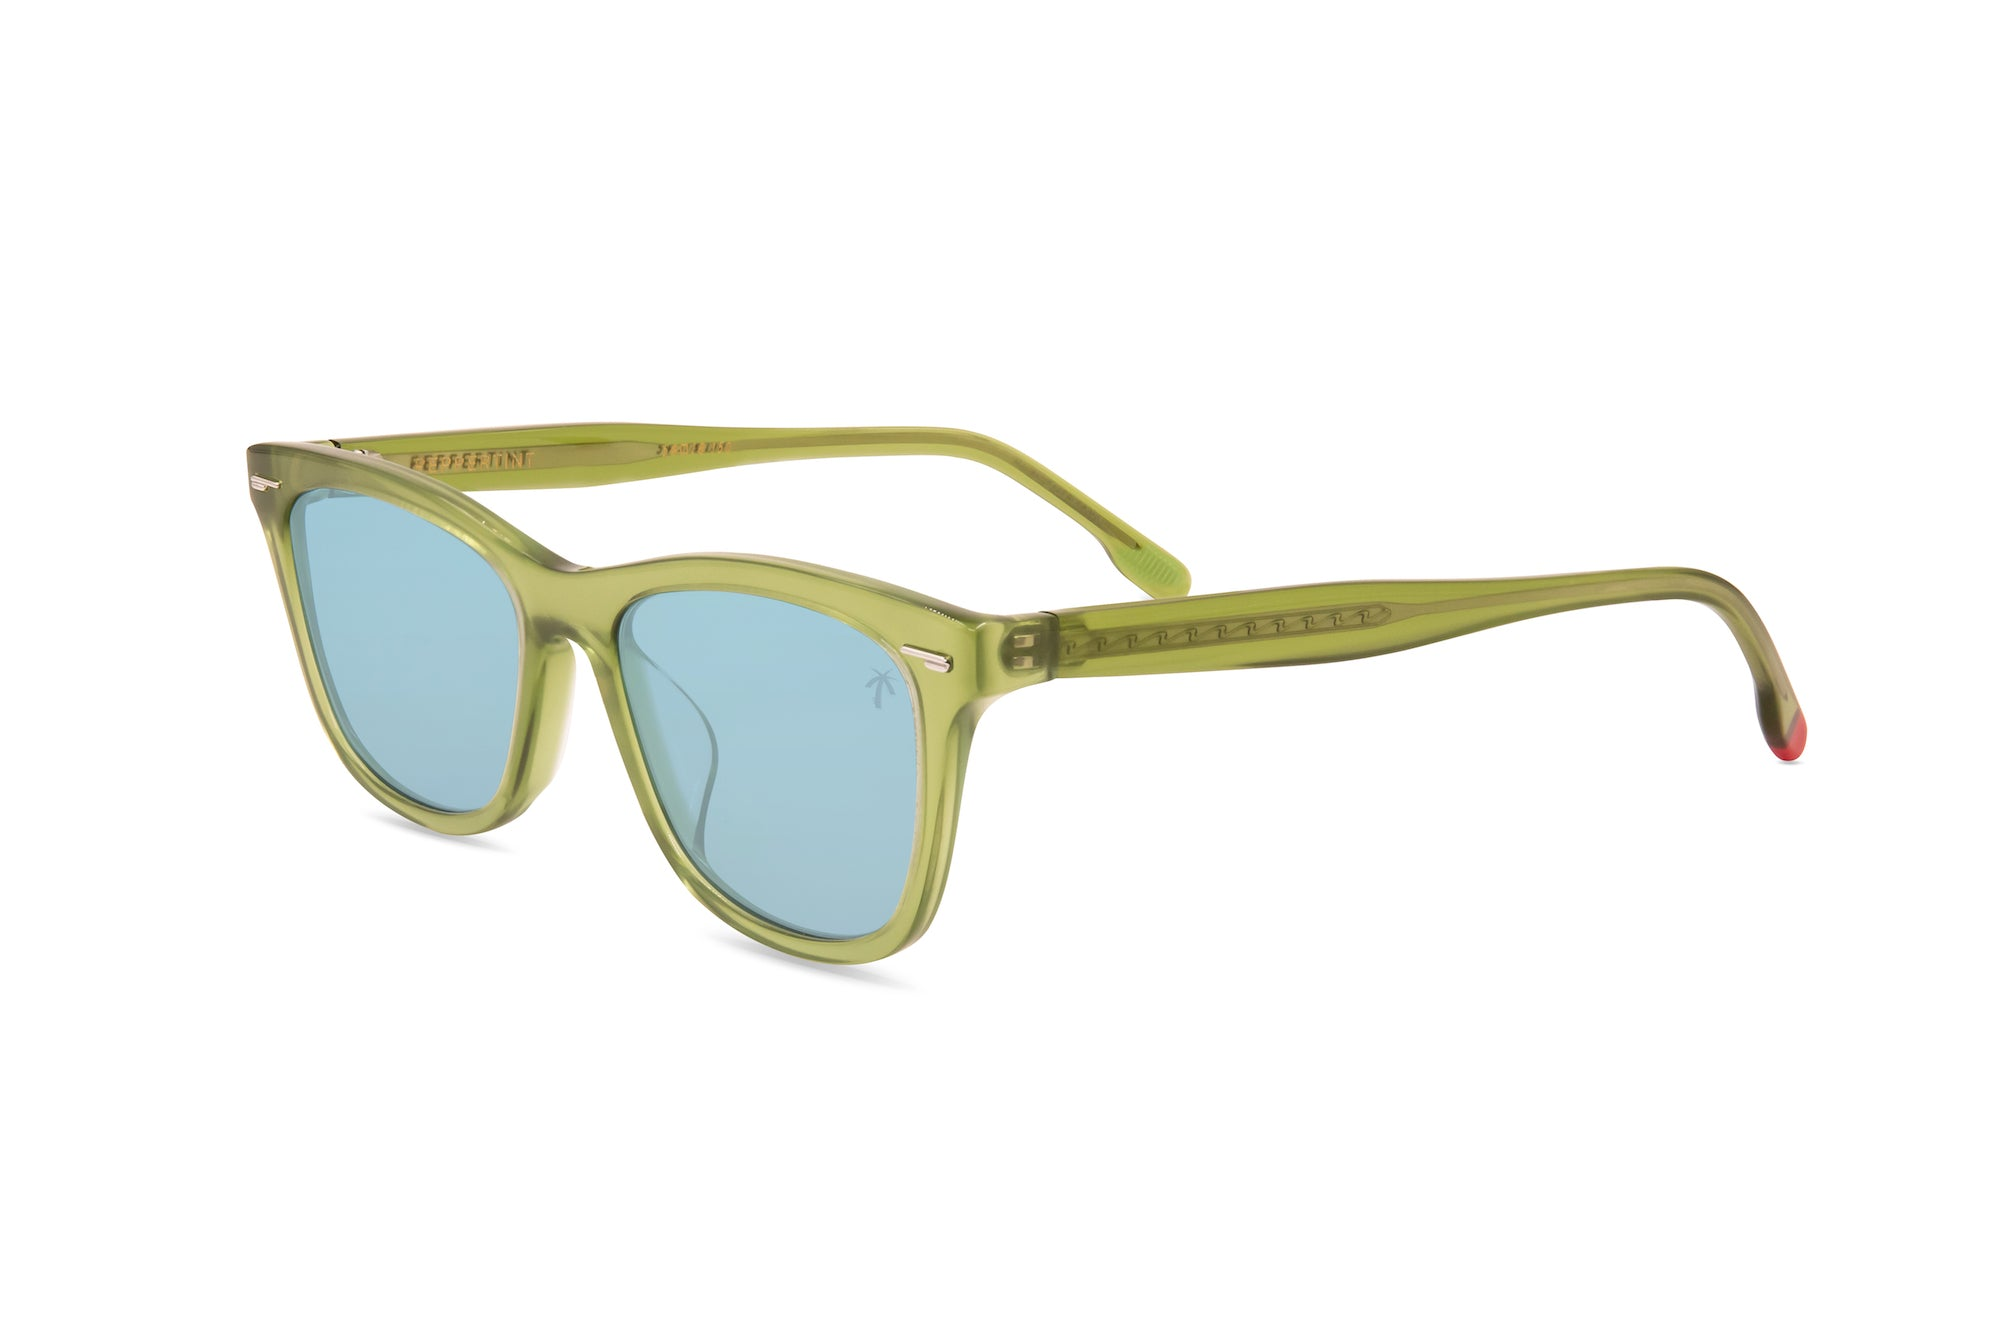 Overland in Light Blue - Peppertint - Designer sunglasses